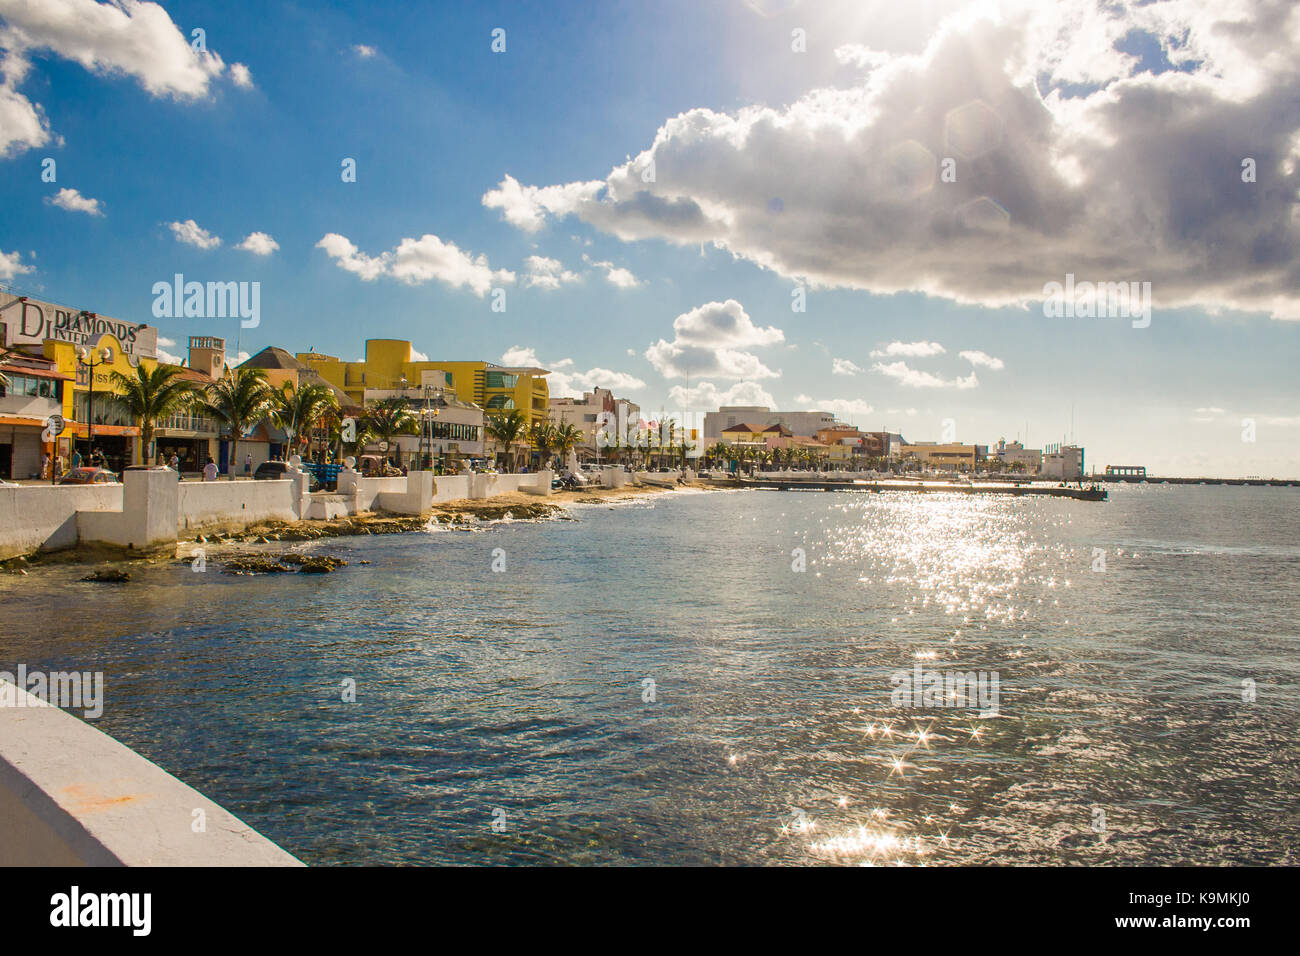 San Miguel boardwalk on the island of Cozumel, Mexico seen from a dock. - Stock Image